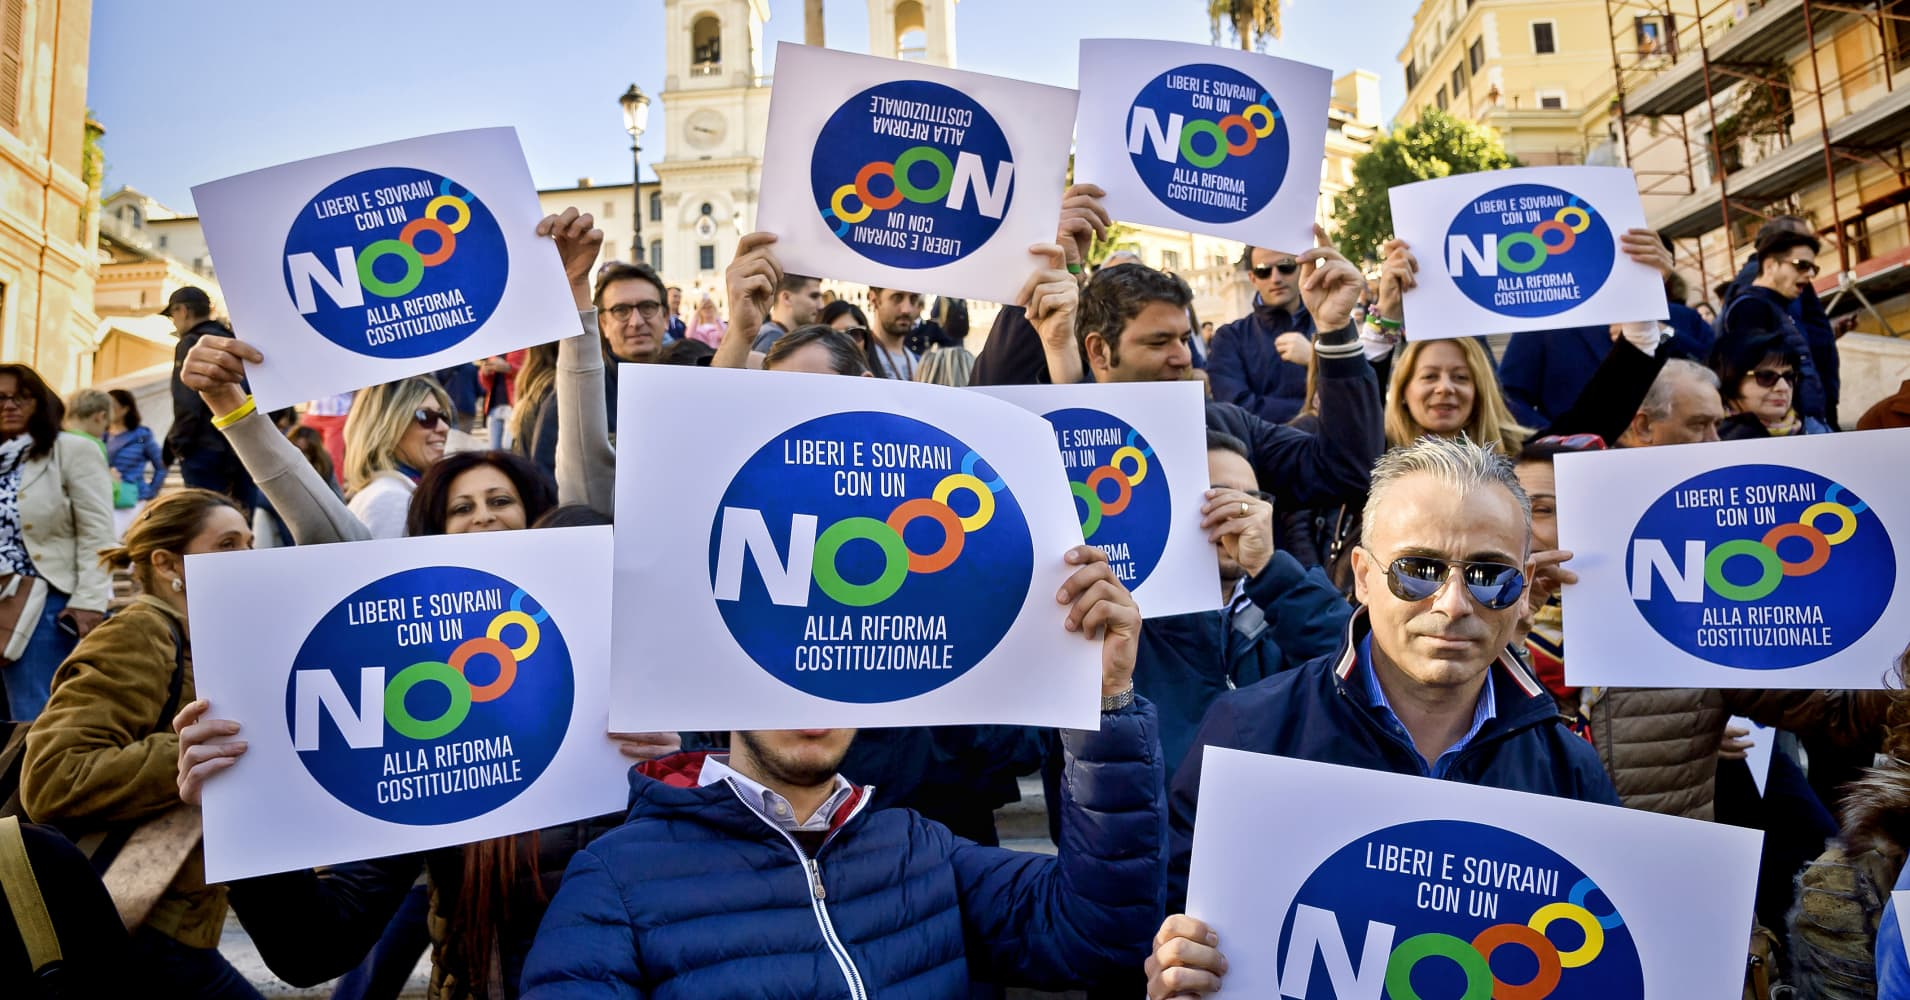 Italy's referendum explained: What you need to know